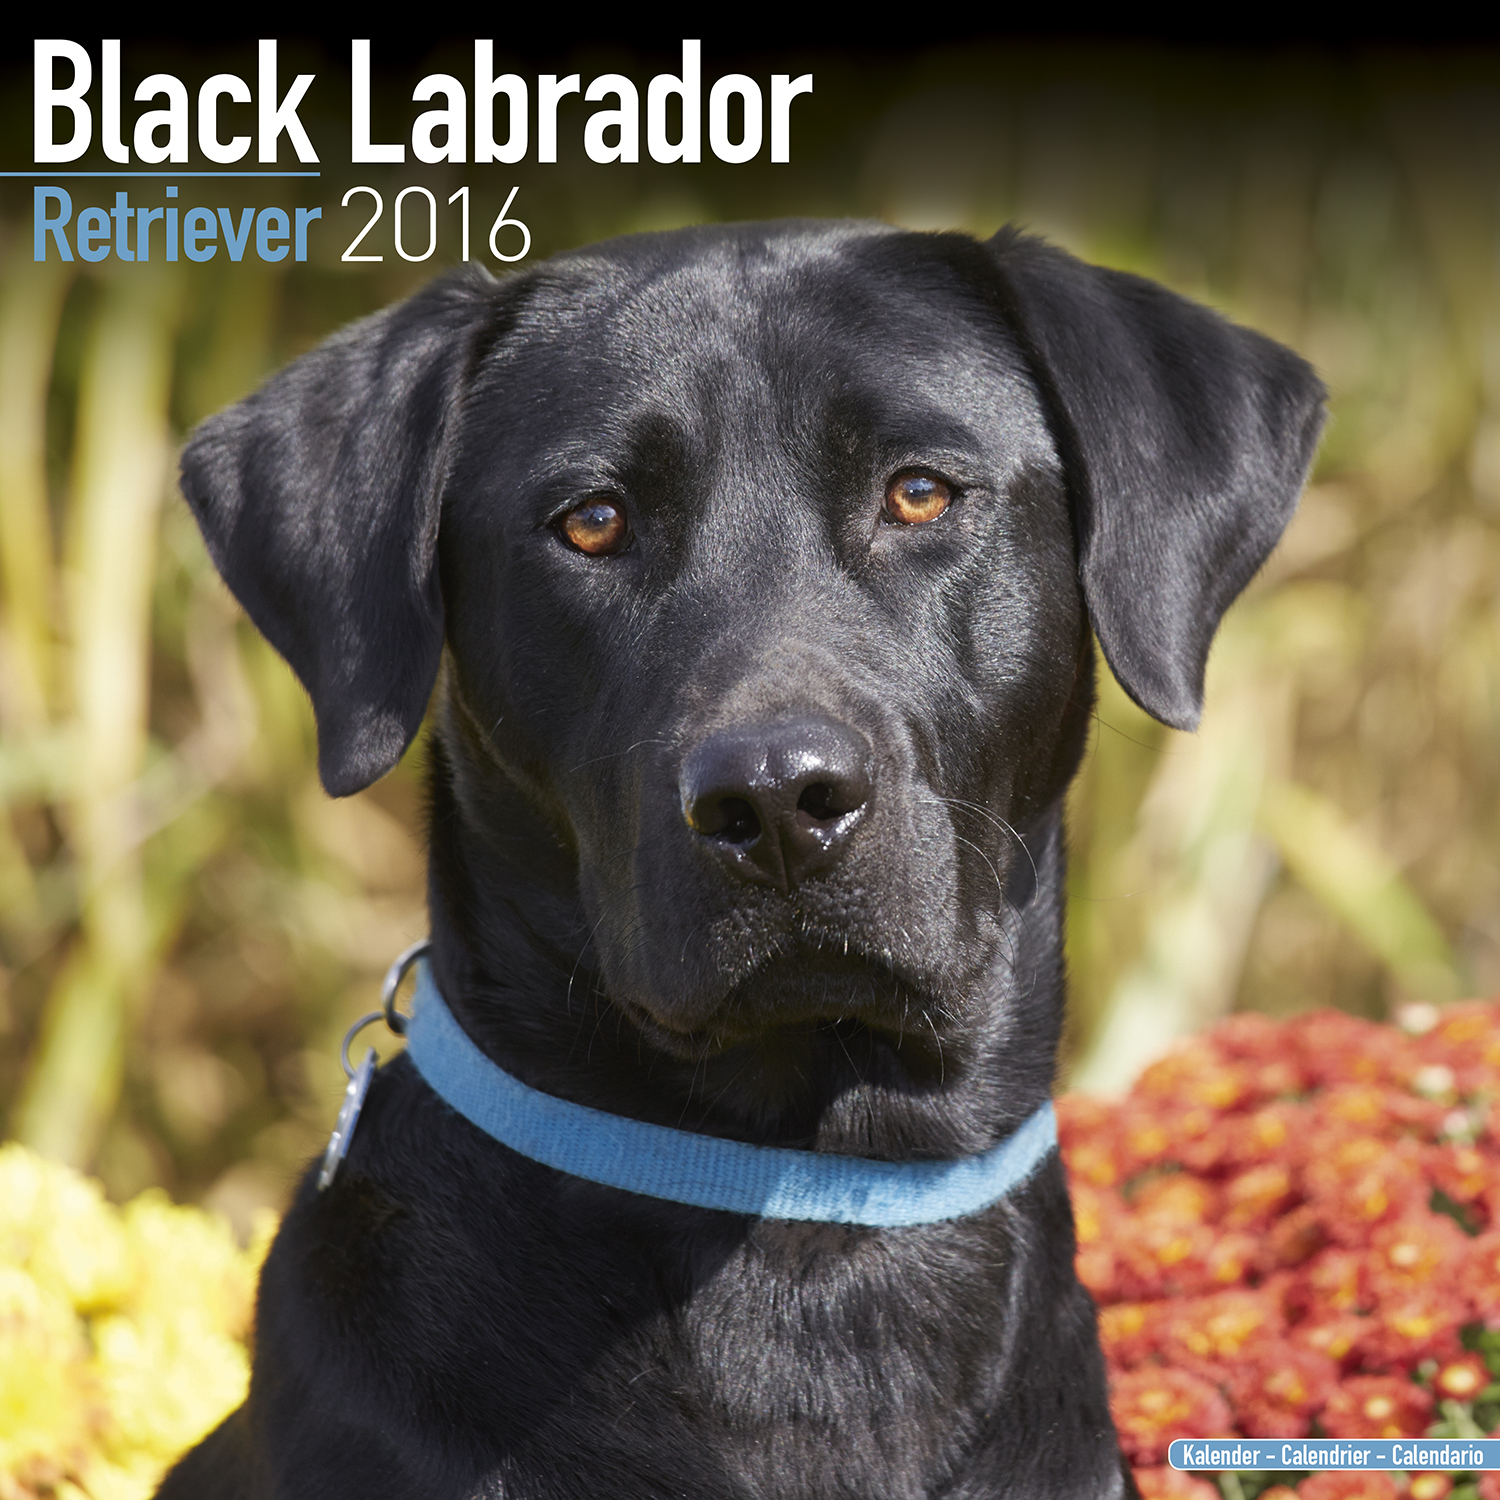 Black labrador retriever wall calendar 2016